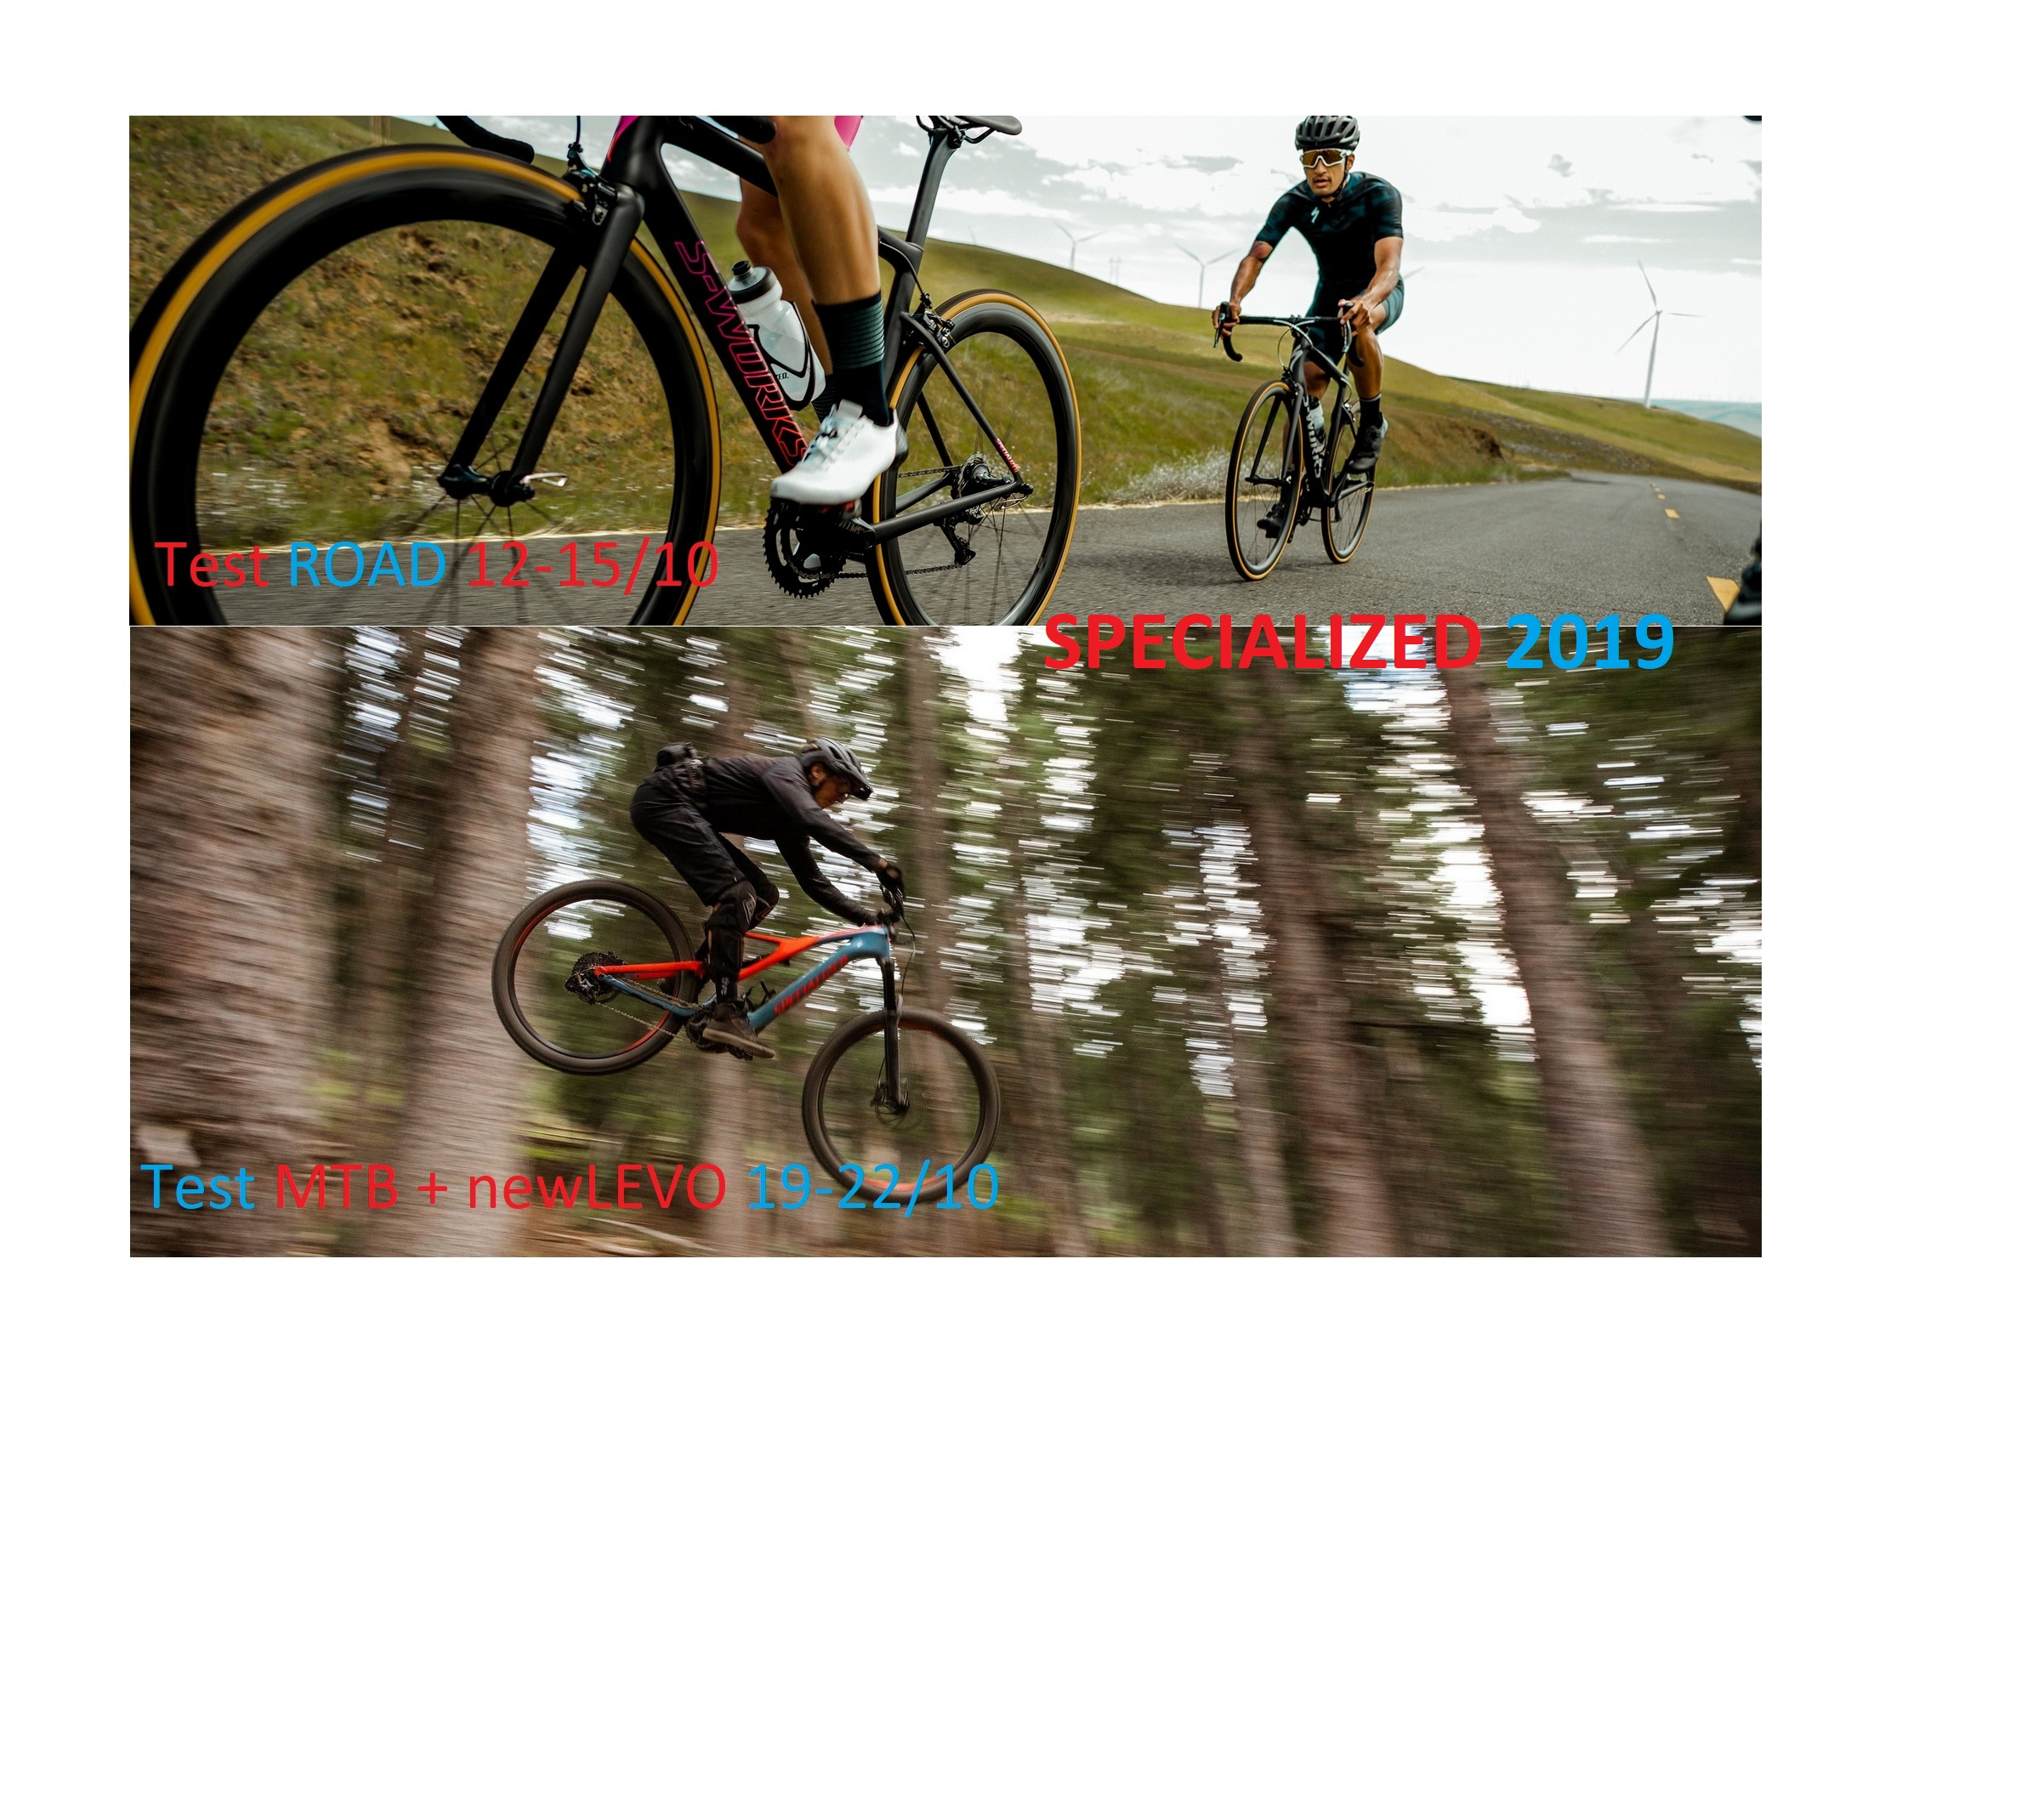 Test Specialized Road + MTB 2019